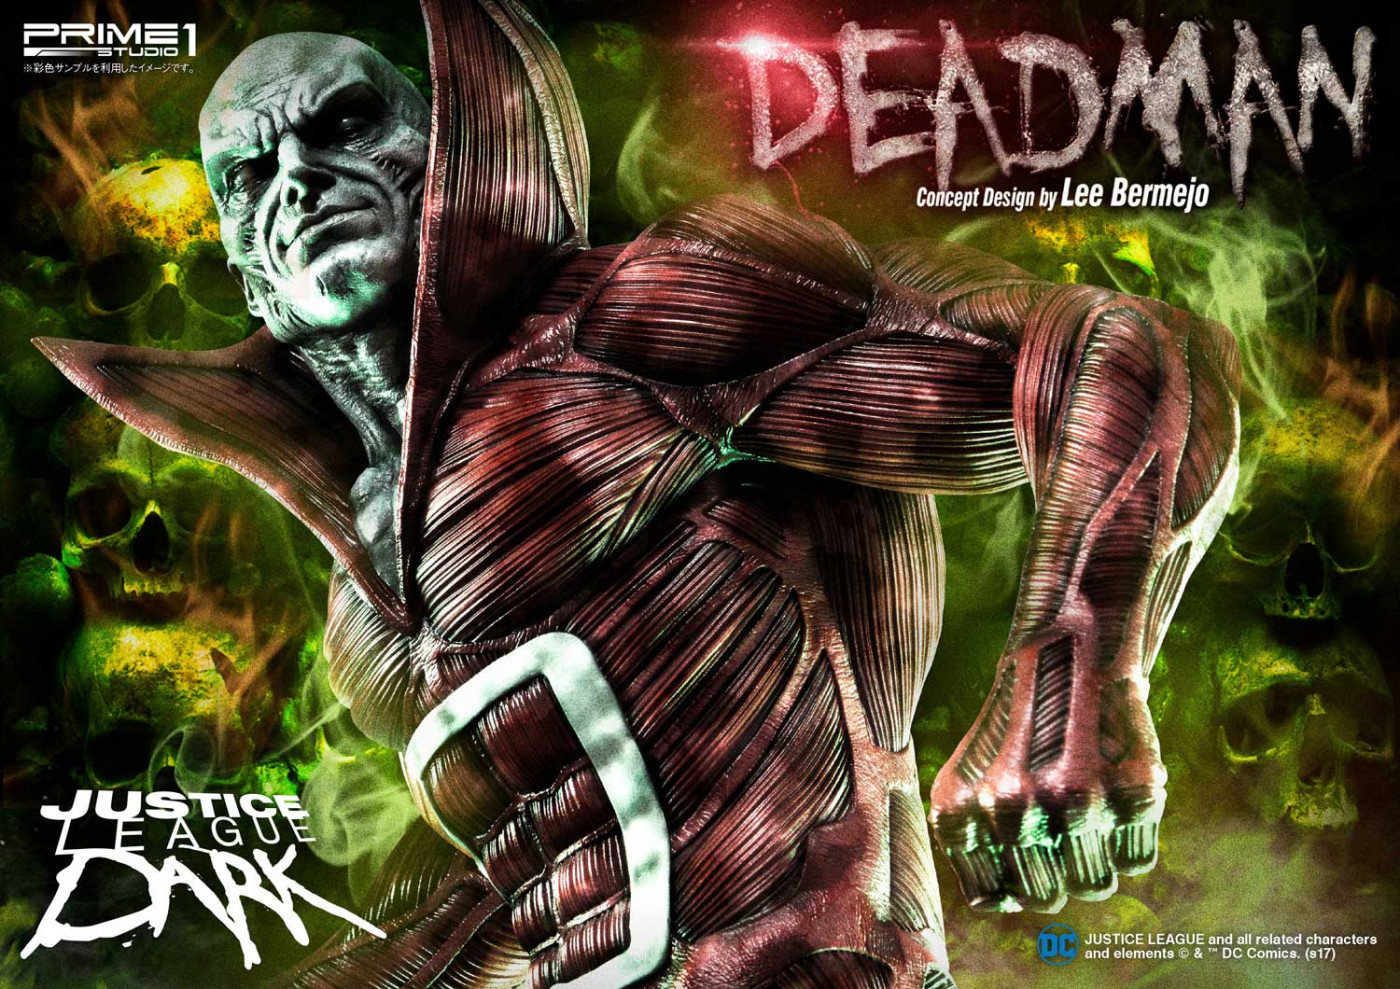 Museum Masterline Justice League Dark Deadman (Concept Design by Lee Bermejo) EX Version